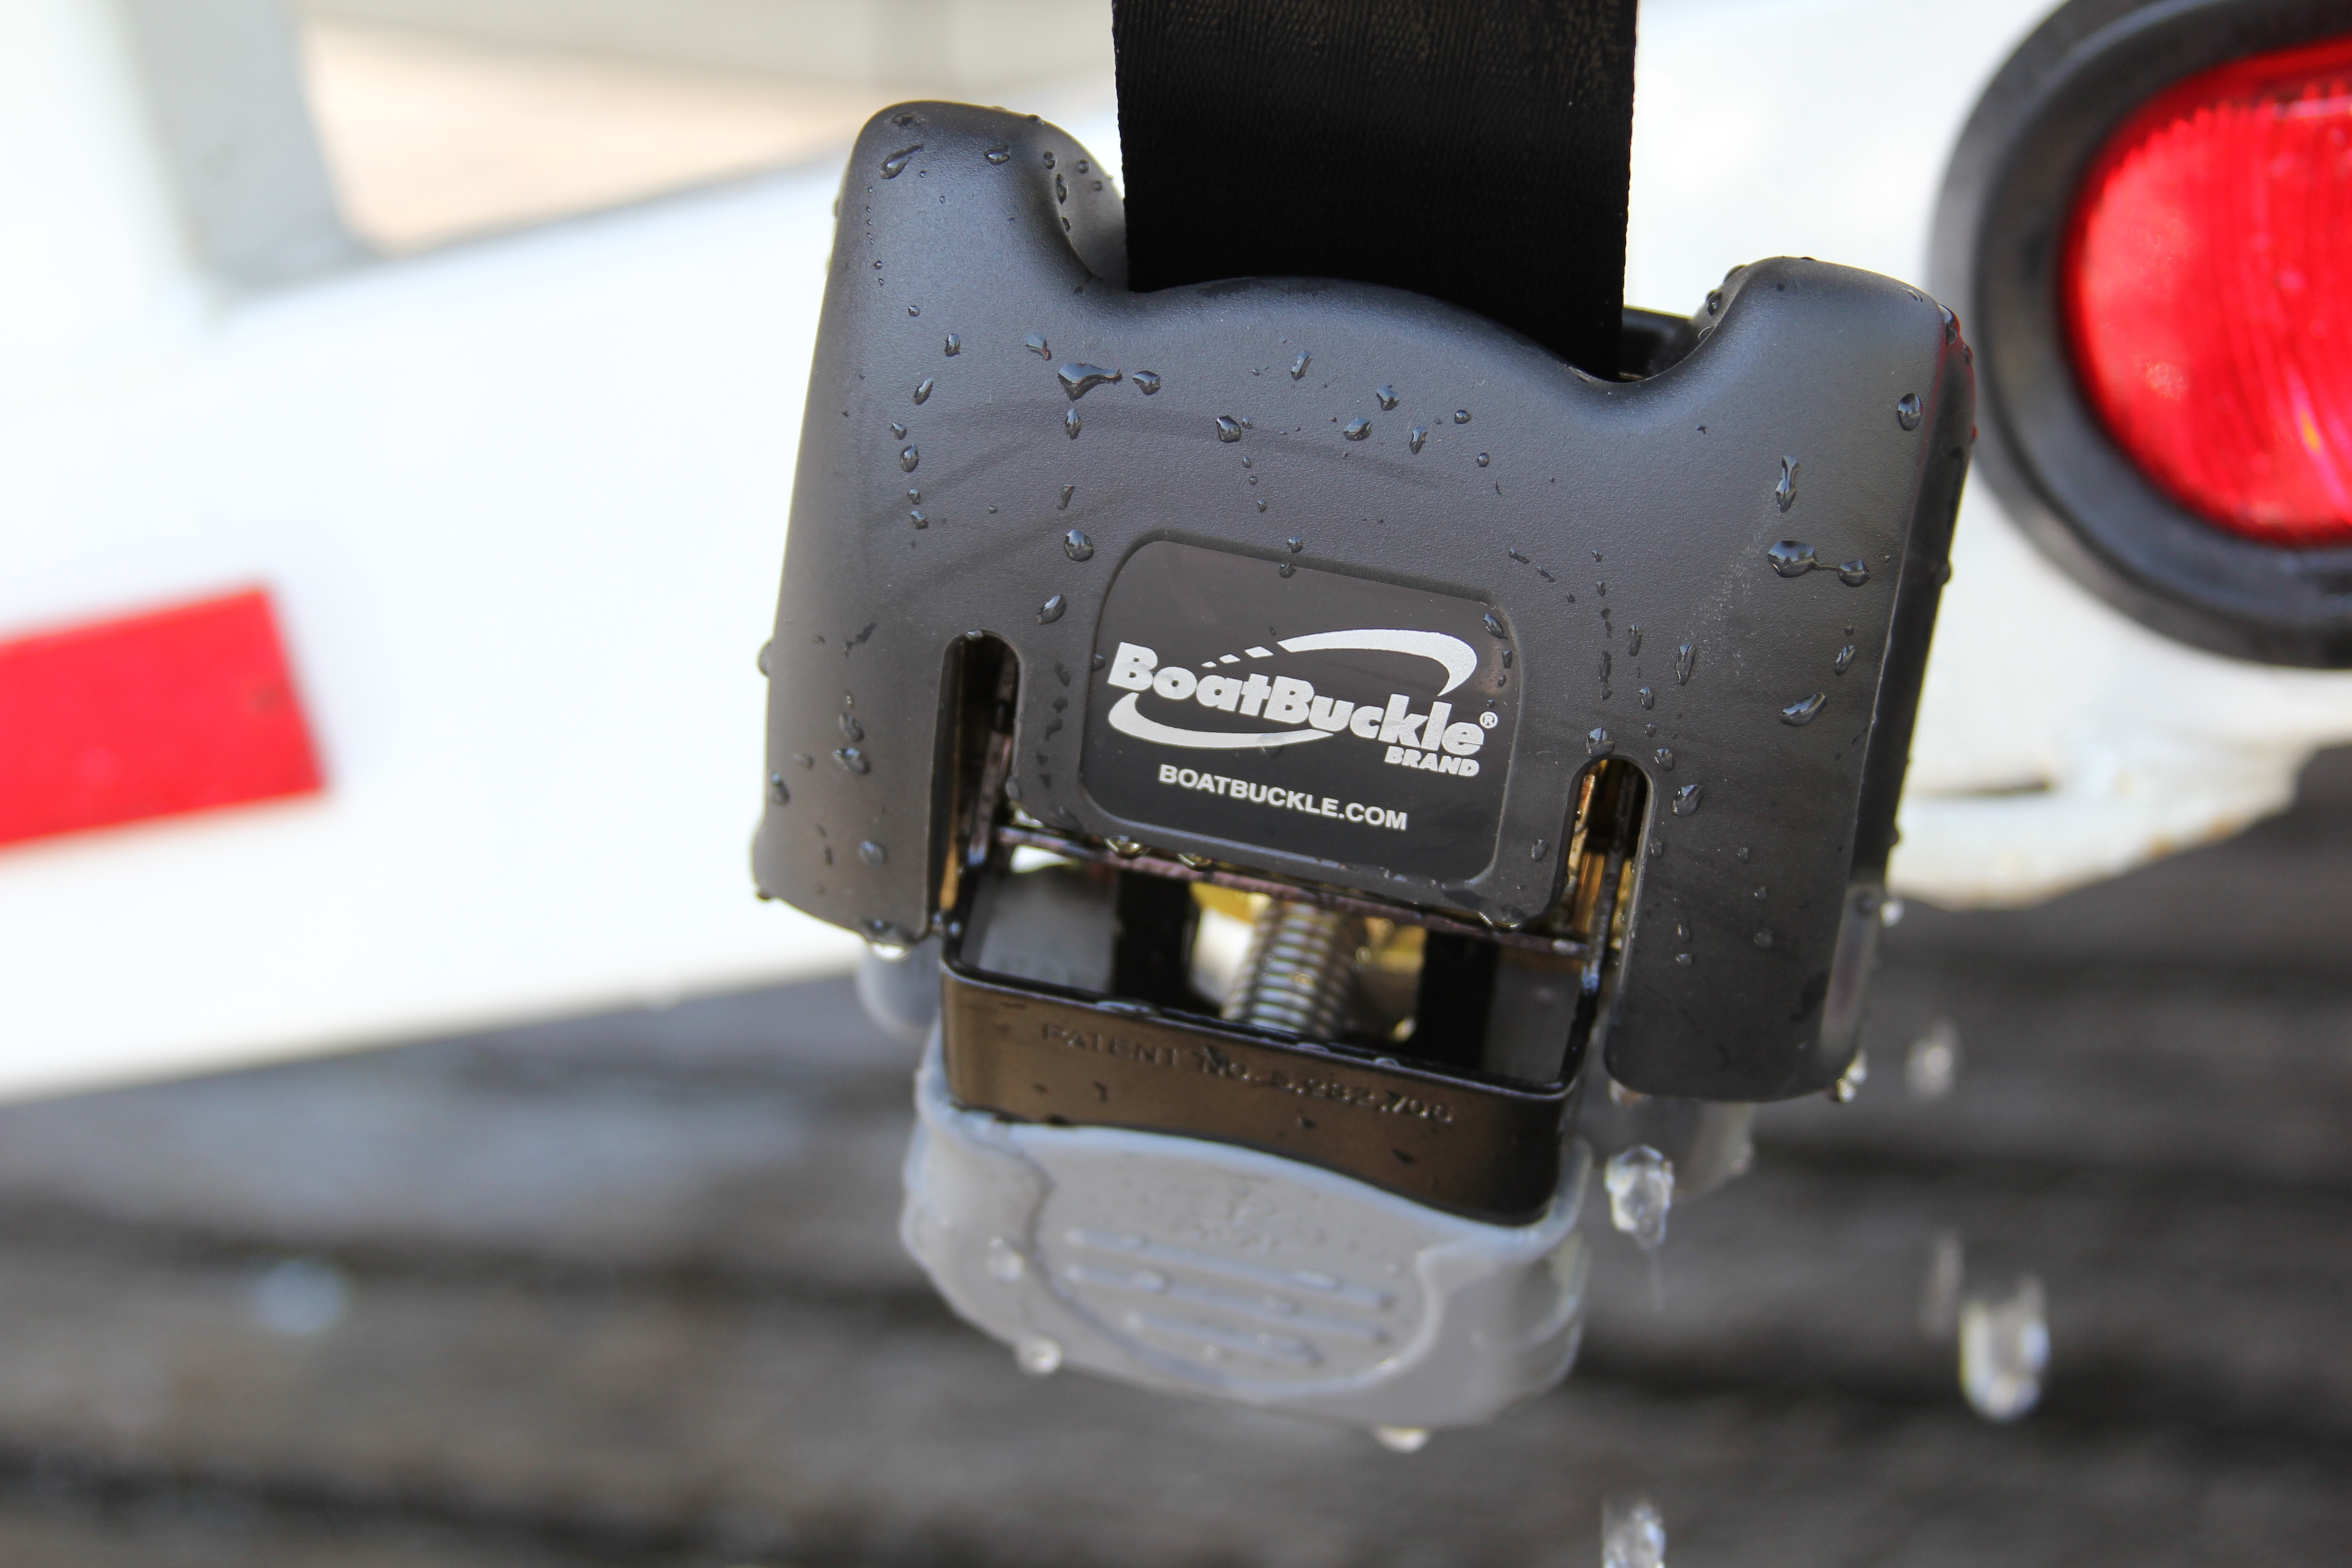 BoatBuckle F08893 G2 Retractable Transom Tie-Down 2 Pack